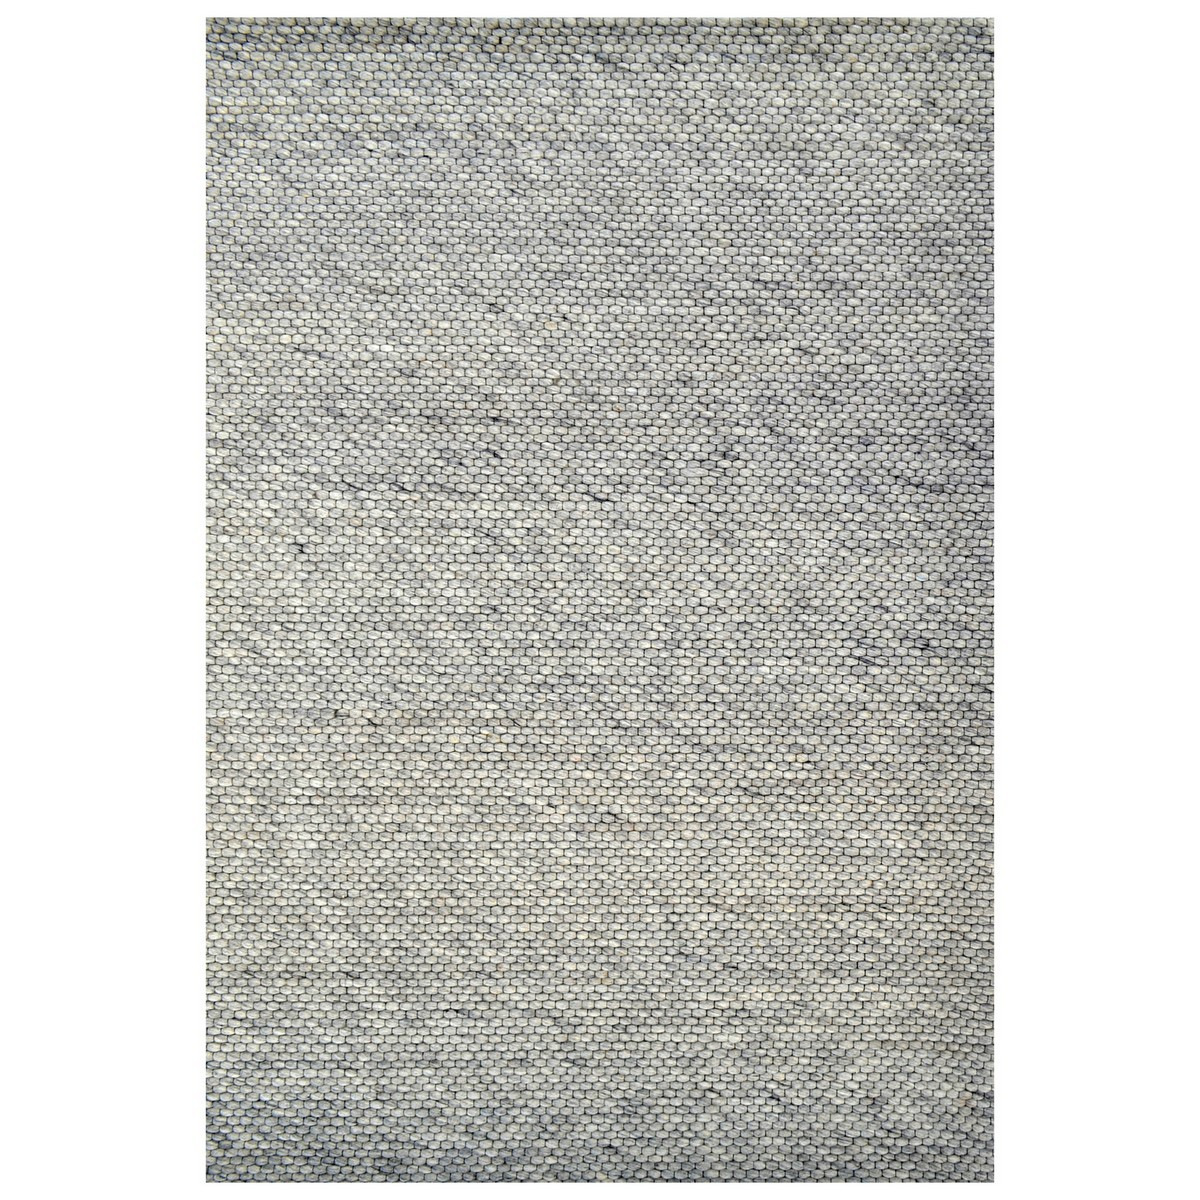 Adelaid Handwoven Wool Rug, 110x160cm, Silver